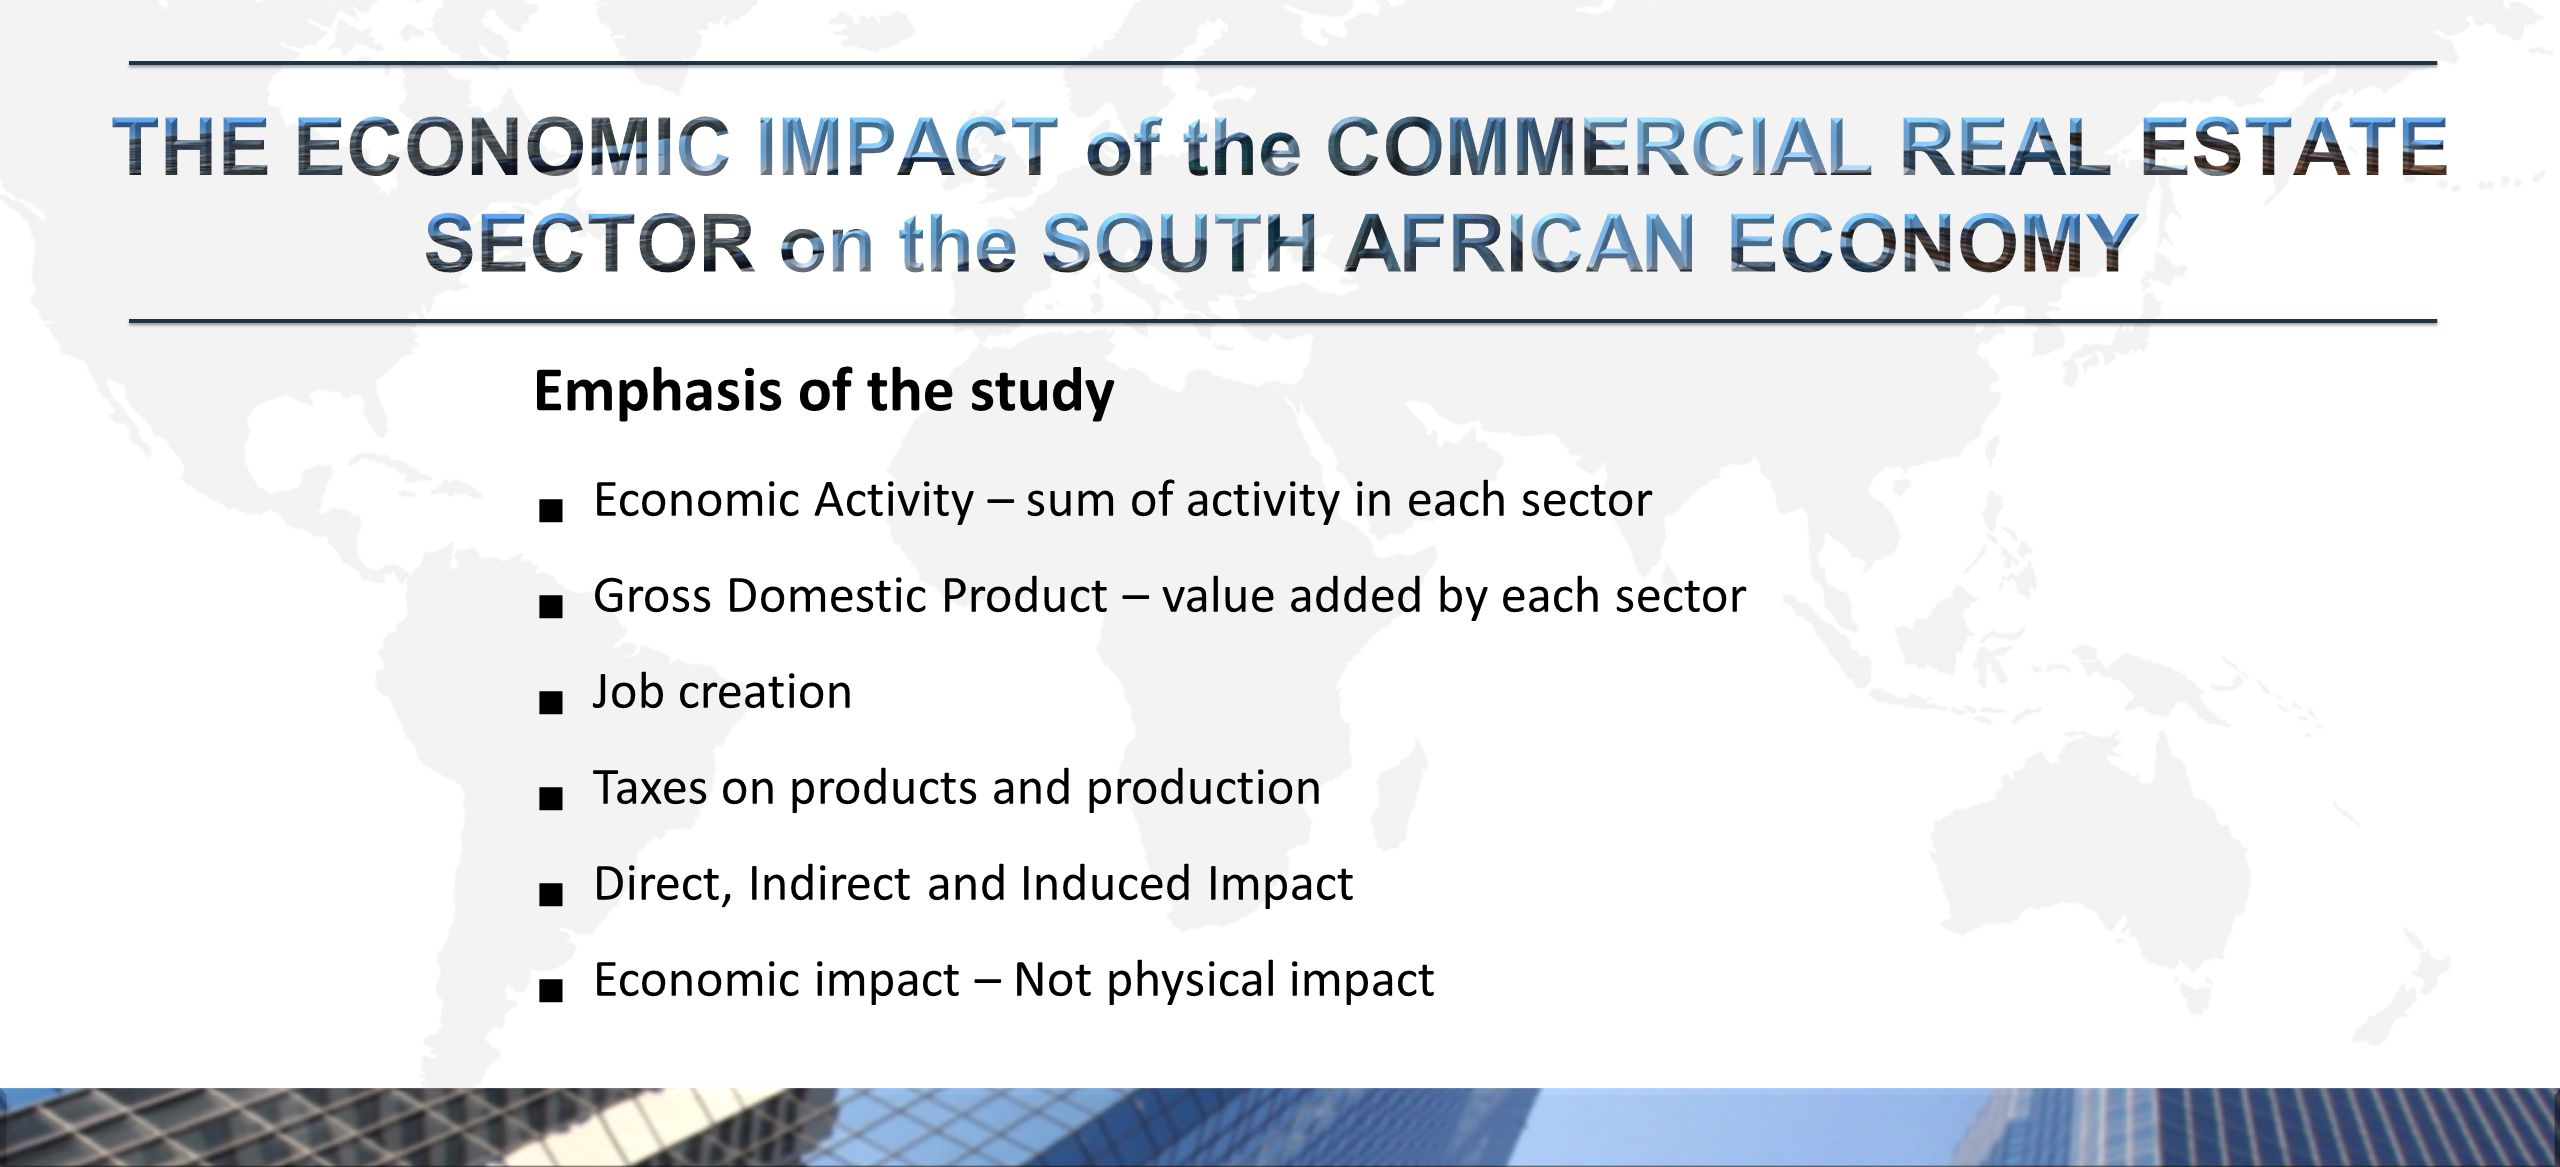  Economic Activity – sum of activity in each sector  Gross Domestic Product – value added by each sector  Job creation  Taxes on products and production  Direct, Indirect and Induced Impact  Economic impact – Not physical impact Emphasis of the study